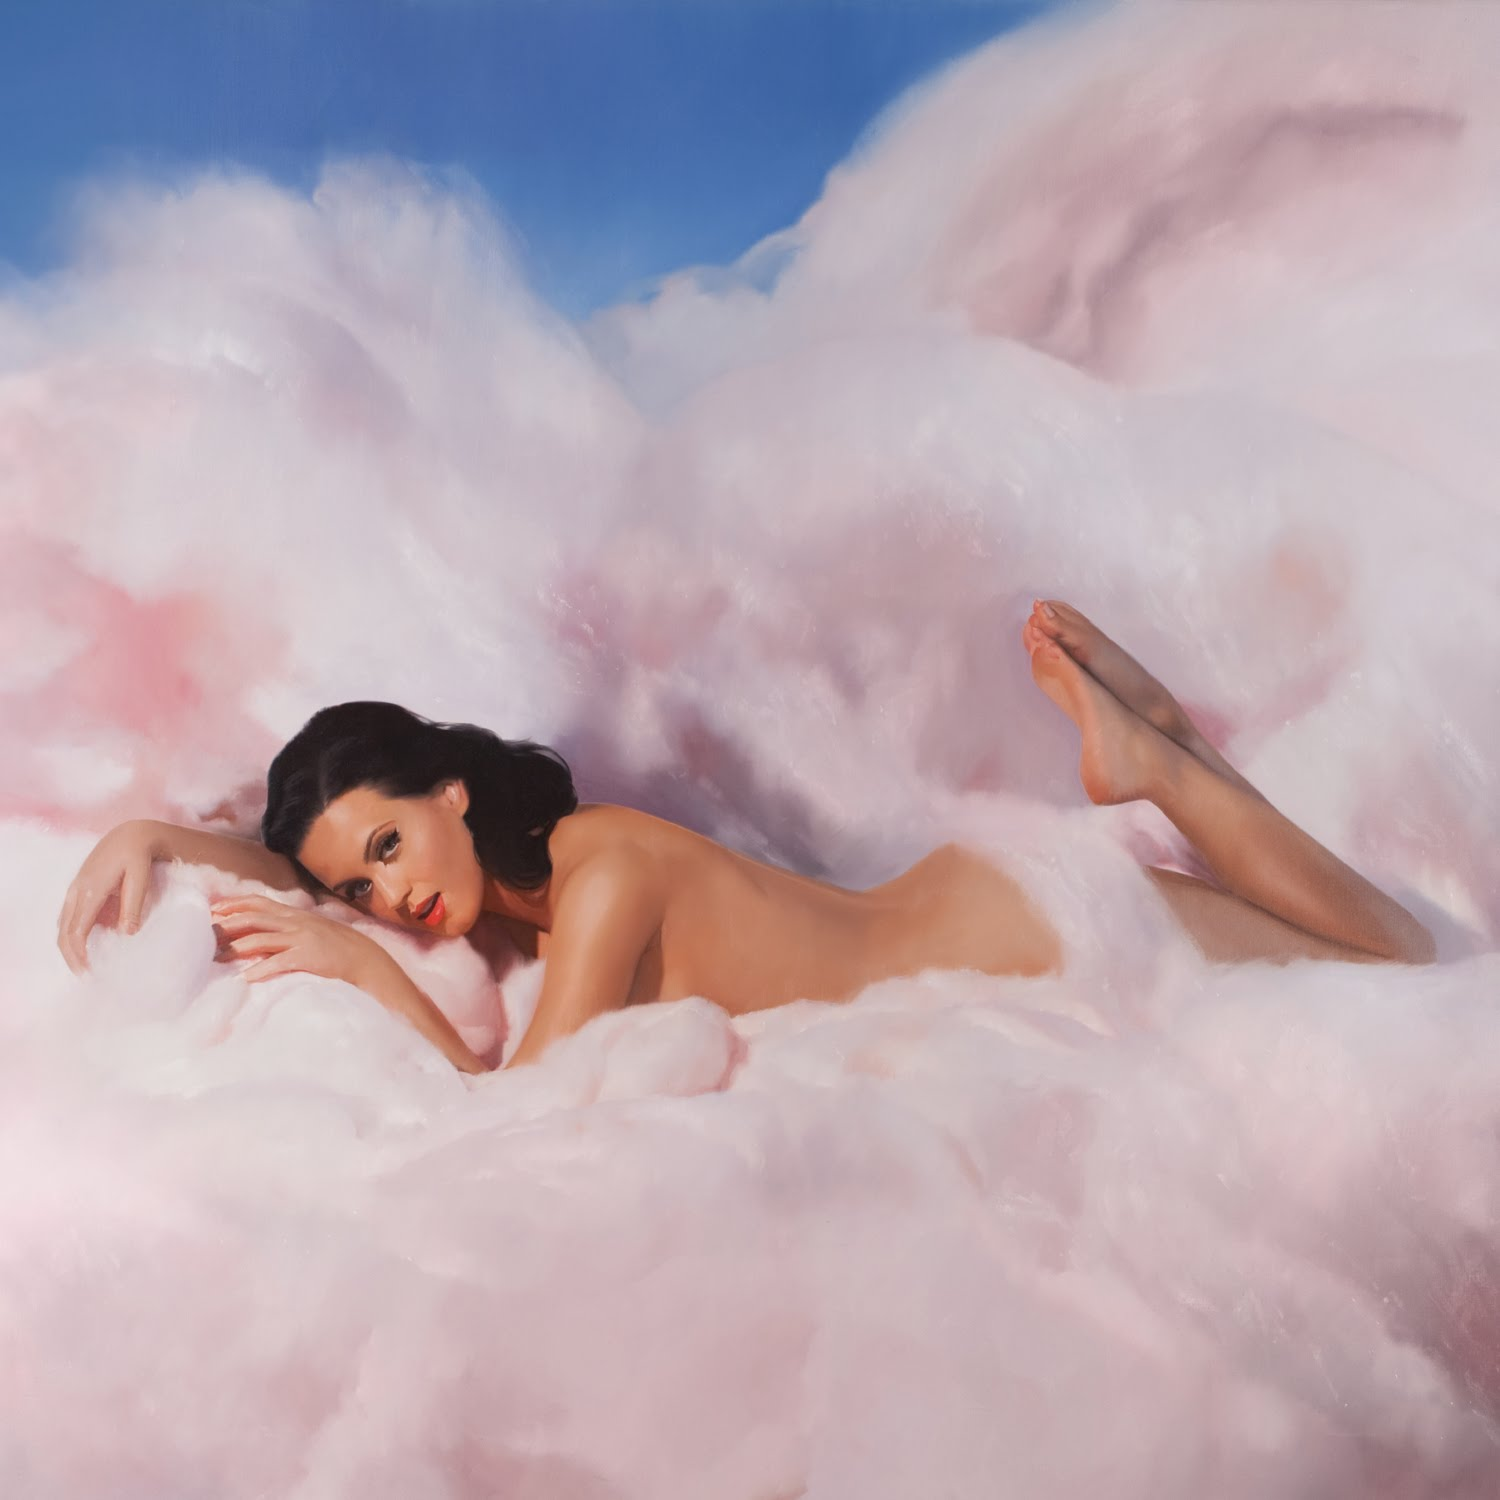 http://4.bp.blogspot.com/_vnJyt6ymNpU/TF2W20VRiwI/AAAAAAAAY7s/vZ3ycA6g5LM/s1600/Katy+Perry+-+Teenage+Dream+%28Official+Album+Cover%29.jpg